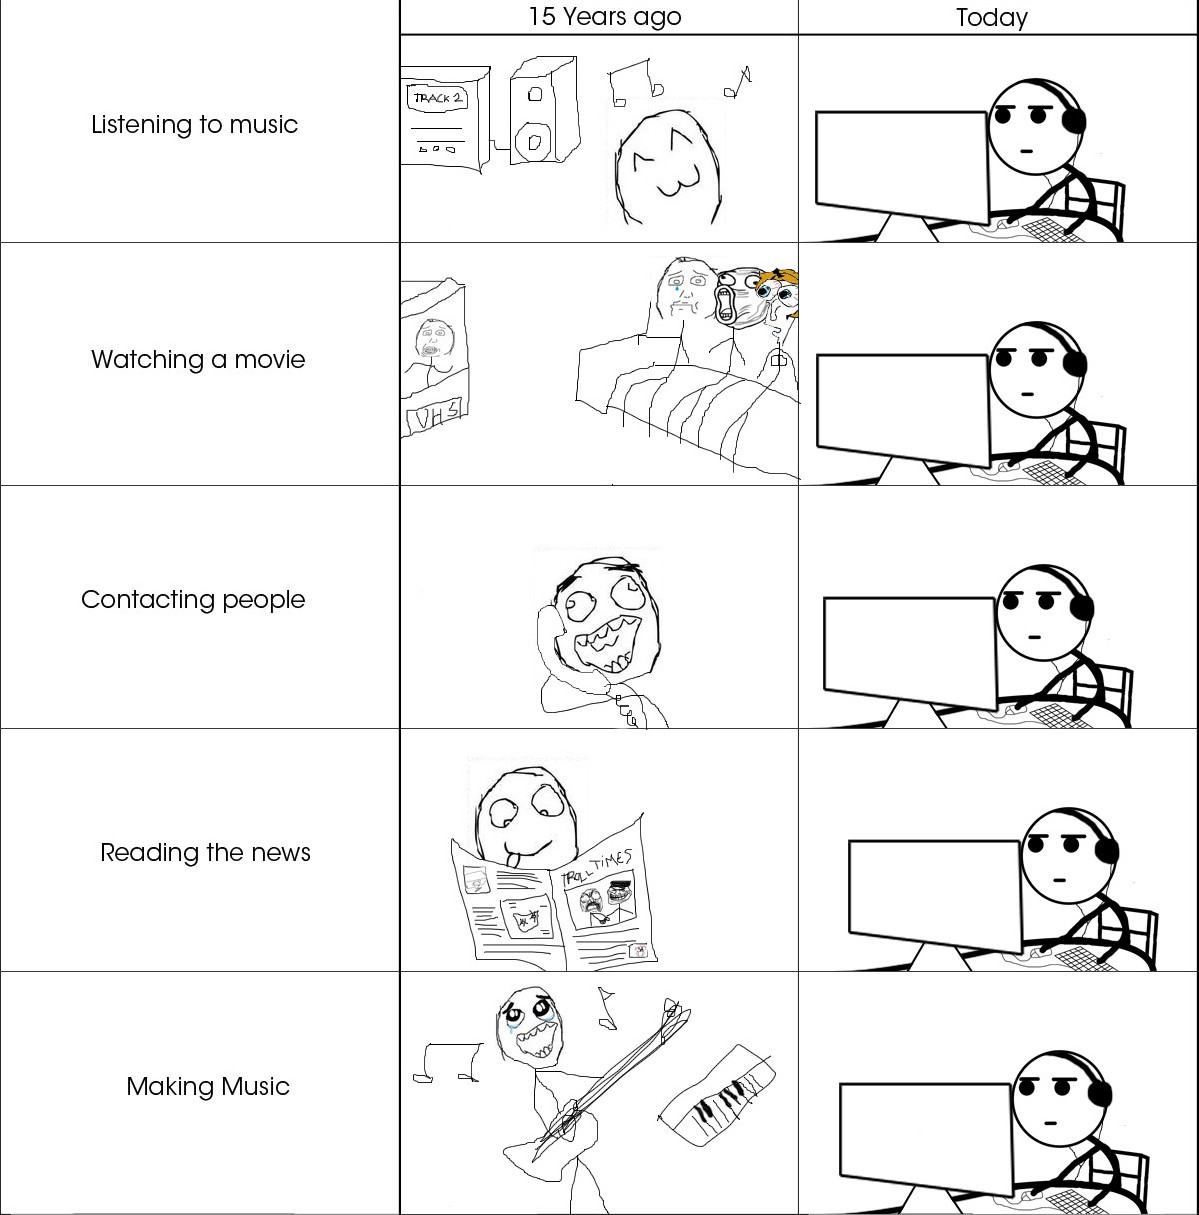 Rage Comic depicting how Computers have changed the way we do things daily!